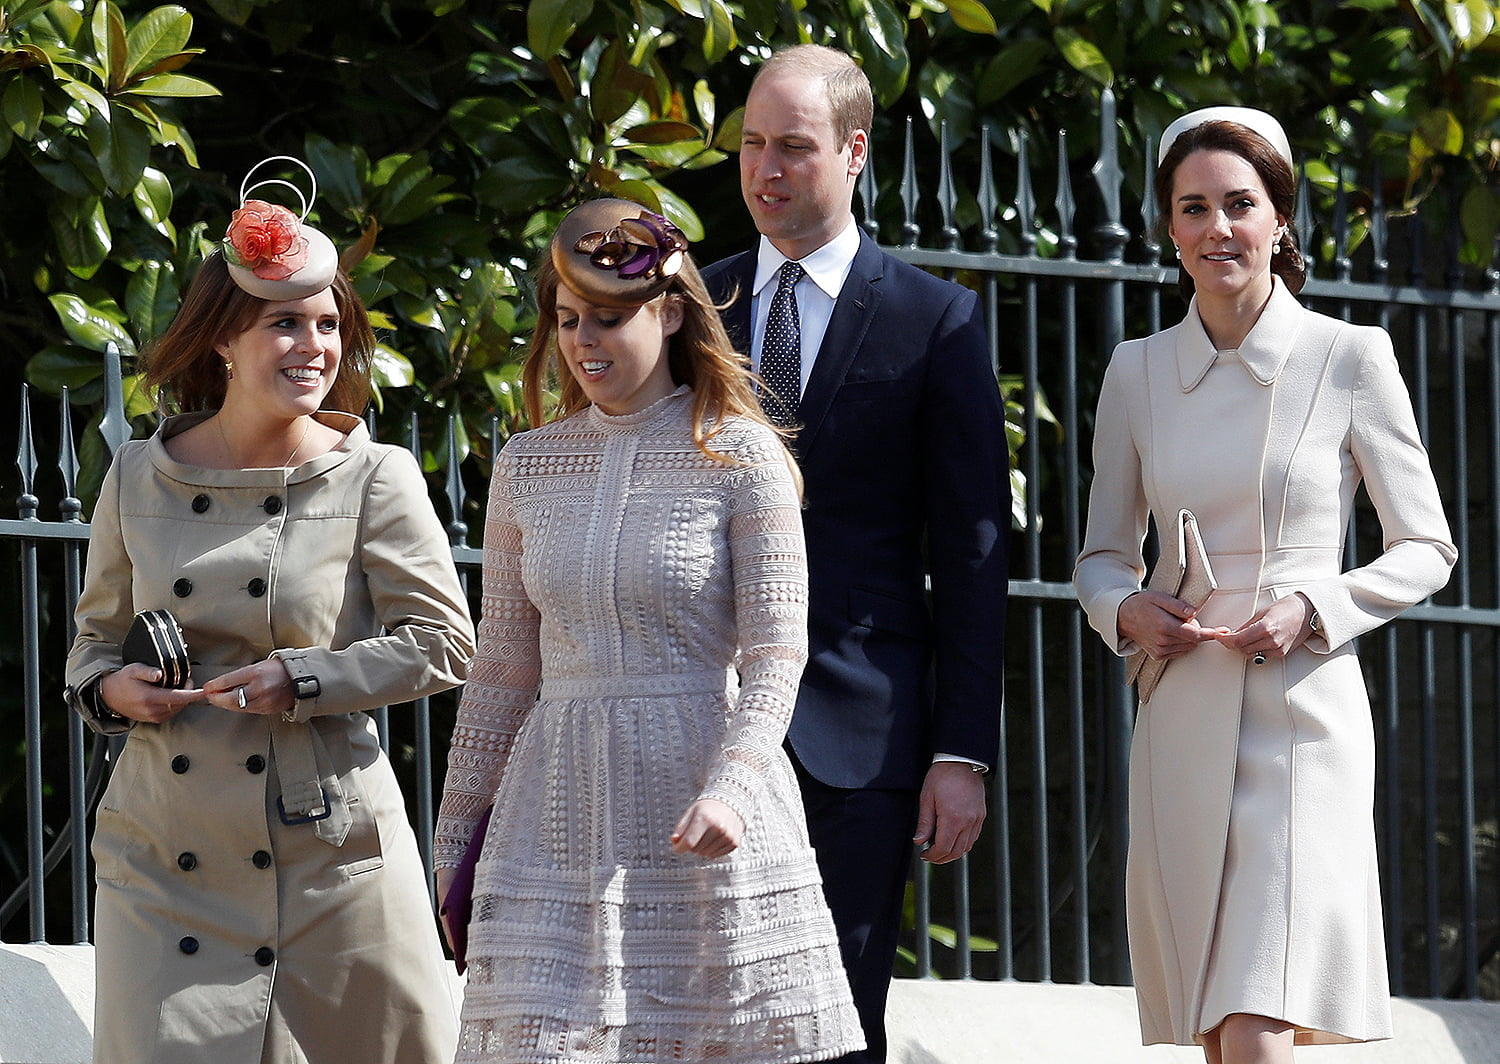 WINDSOR, UNITED KINGDOM - APRIL 16: : (L-R) Princess Eugenie, Princess Beatrice, Prince William, Duke of Cambridge and Catherine, Duchess of Cambridge attend the Easter Day service at St George's Chapel on April 16, 2017 in Windsor, England. (Photo by Peter Nicholls/WPA Pool/Getty Images)